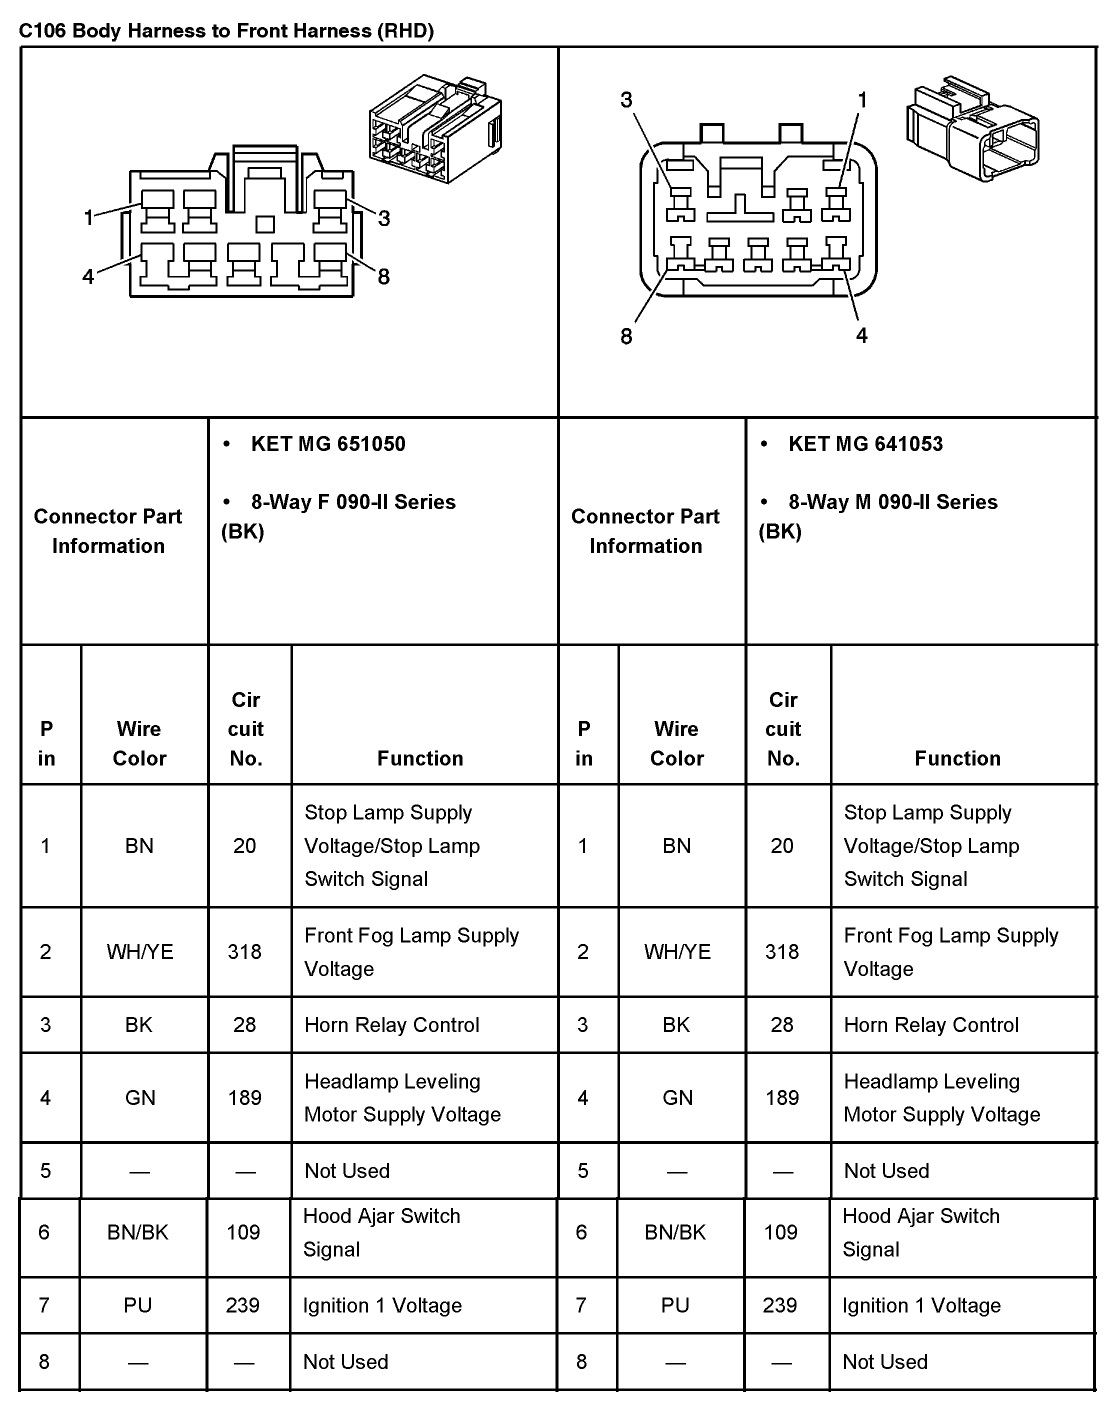 7331d1383704576 2005 aveo master connector list diagrams conn3 jpg 2005 aveo master connector list and diagrams 2006 chevy aveo stereo wiring harness at creativeand.co